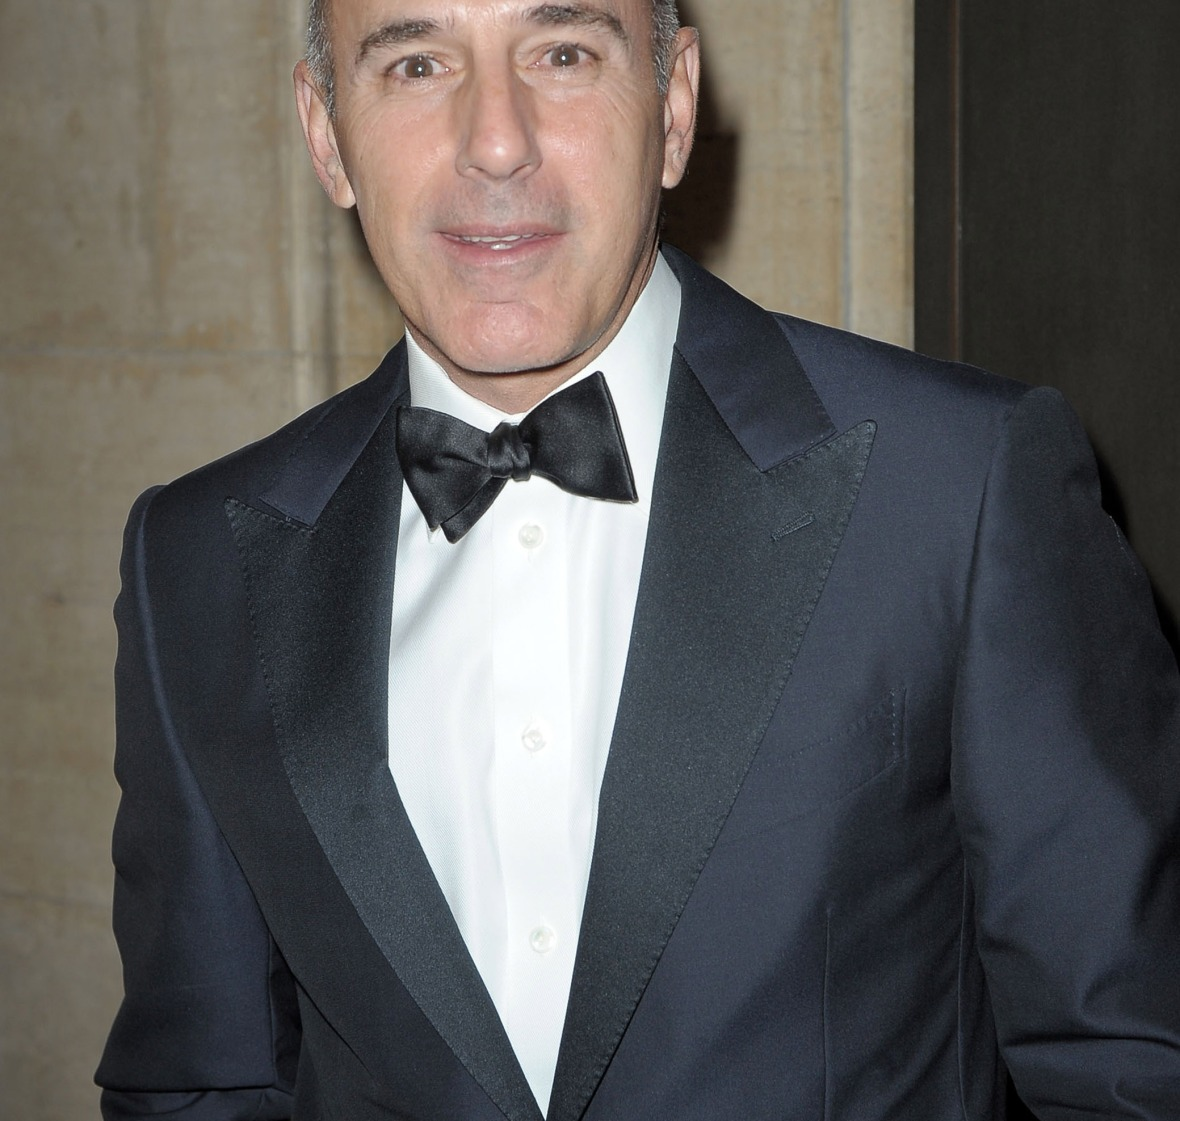 matt lauer - getty